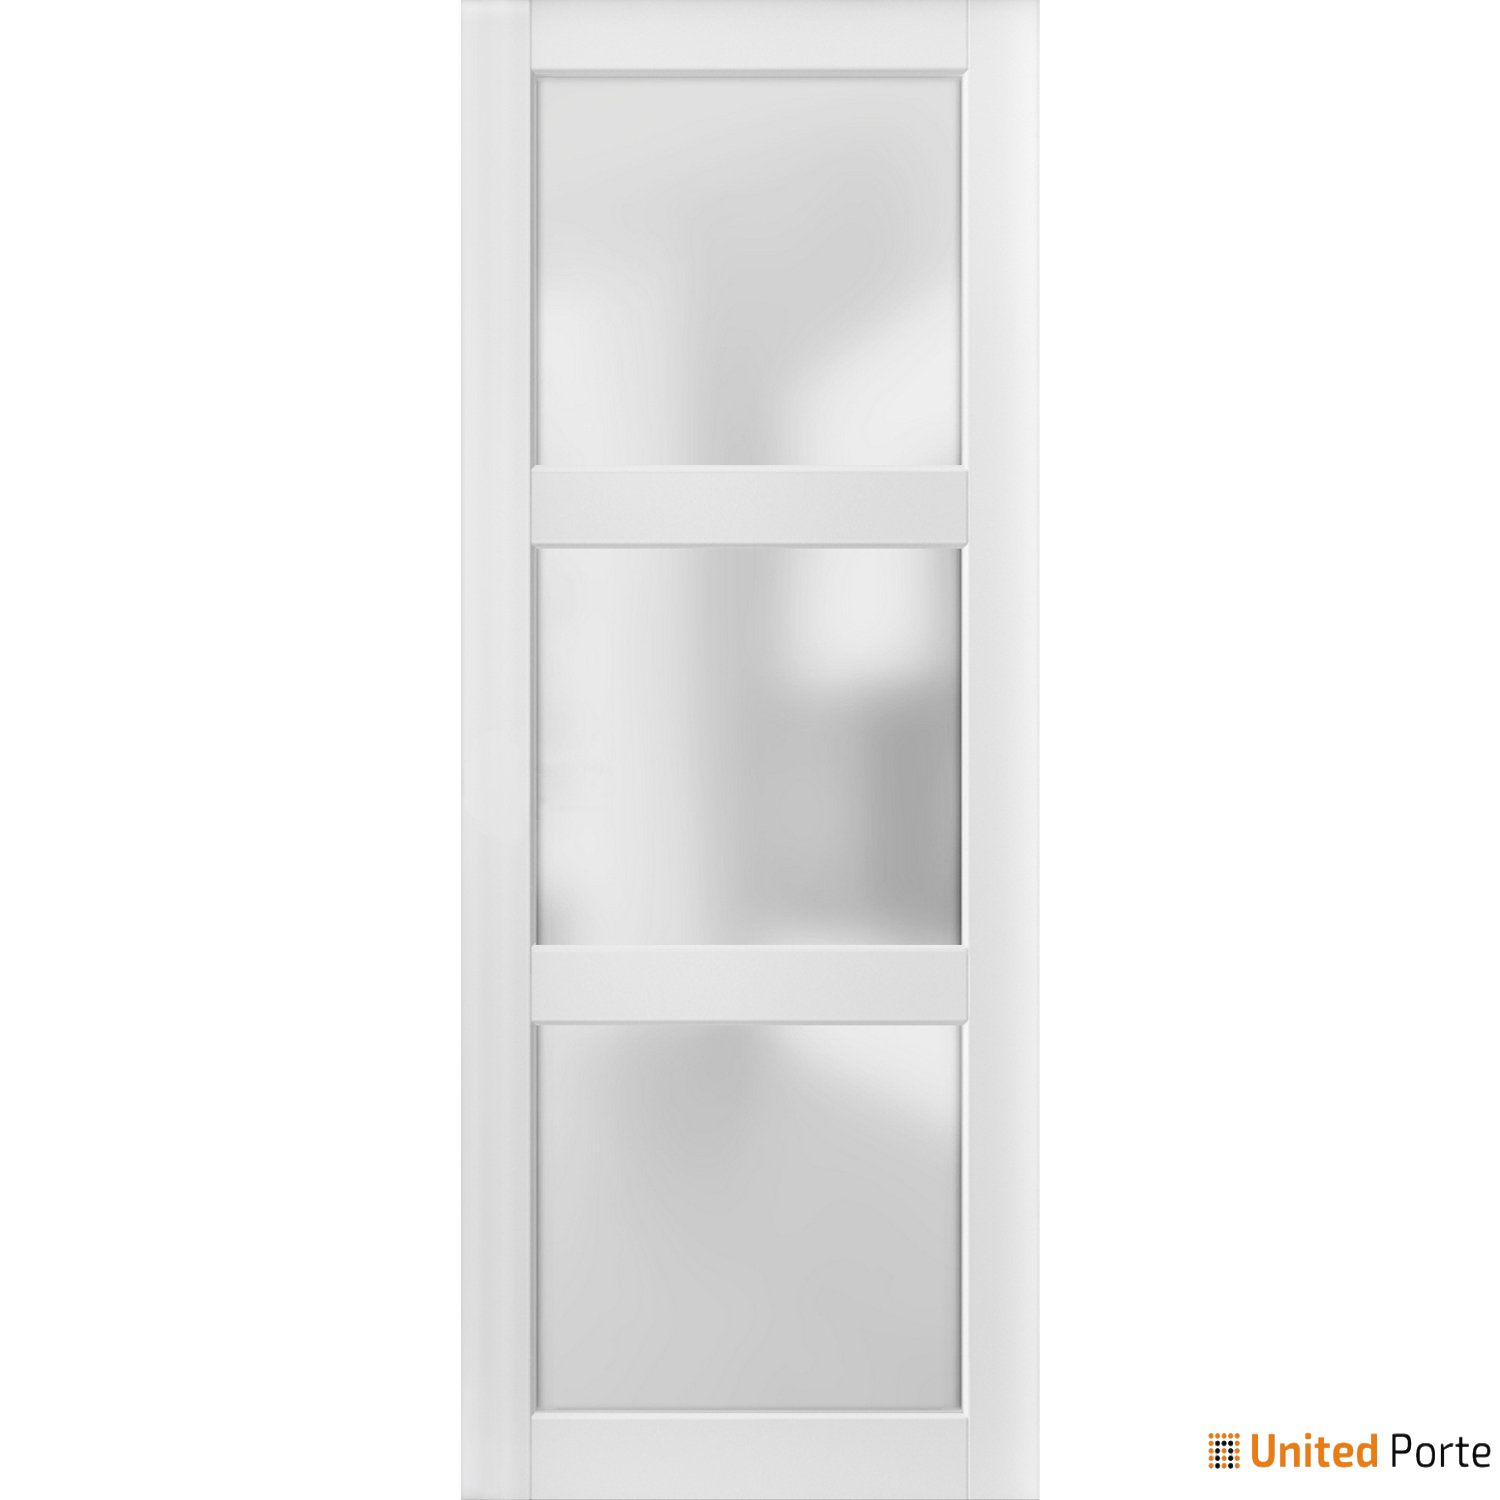 Lucia 2552 White Sturdy Barn Door Frosted Glass Slab | Solid Panel Interior Barn Doors